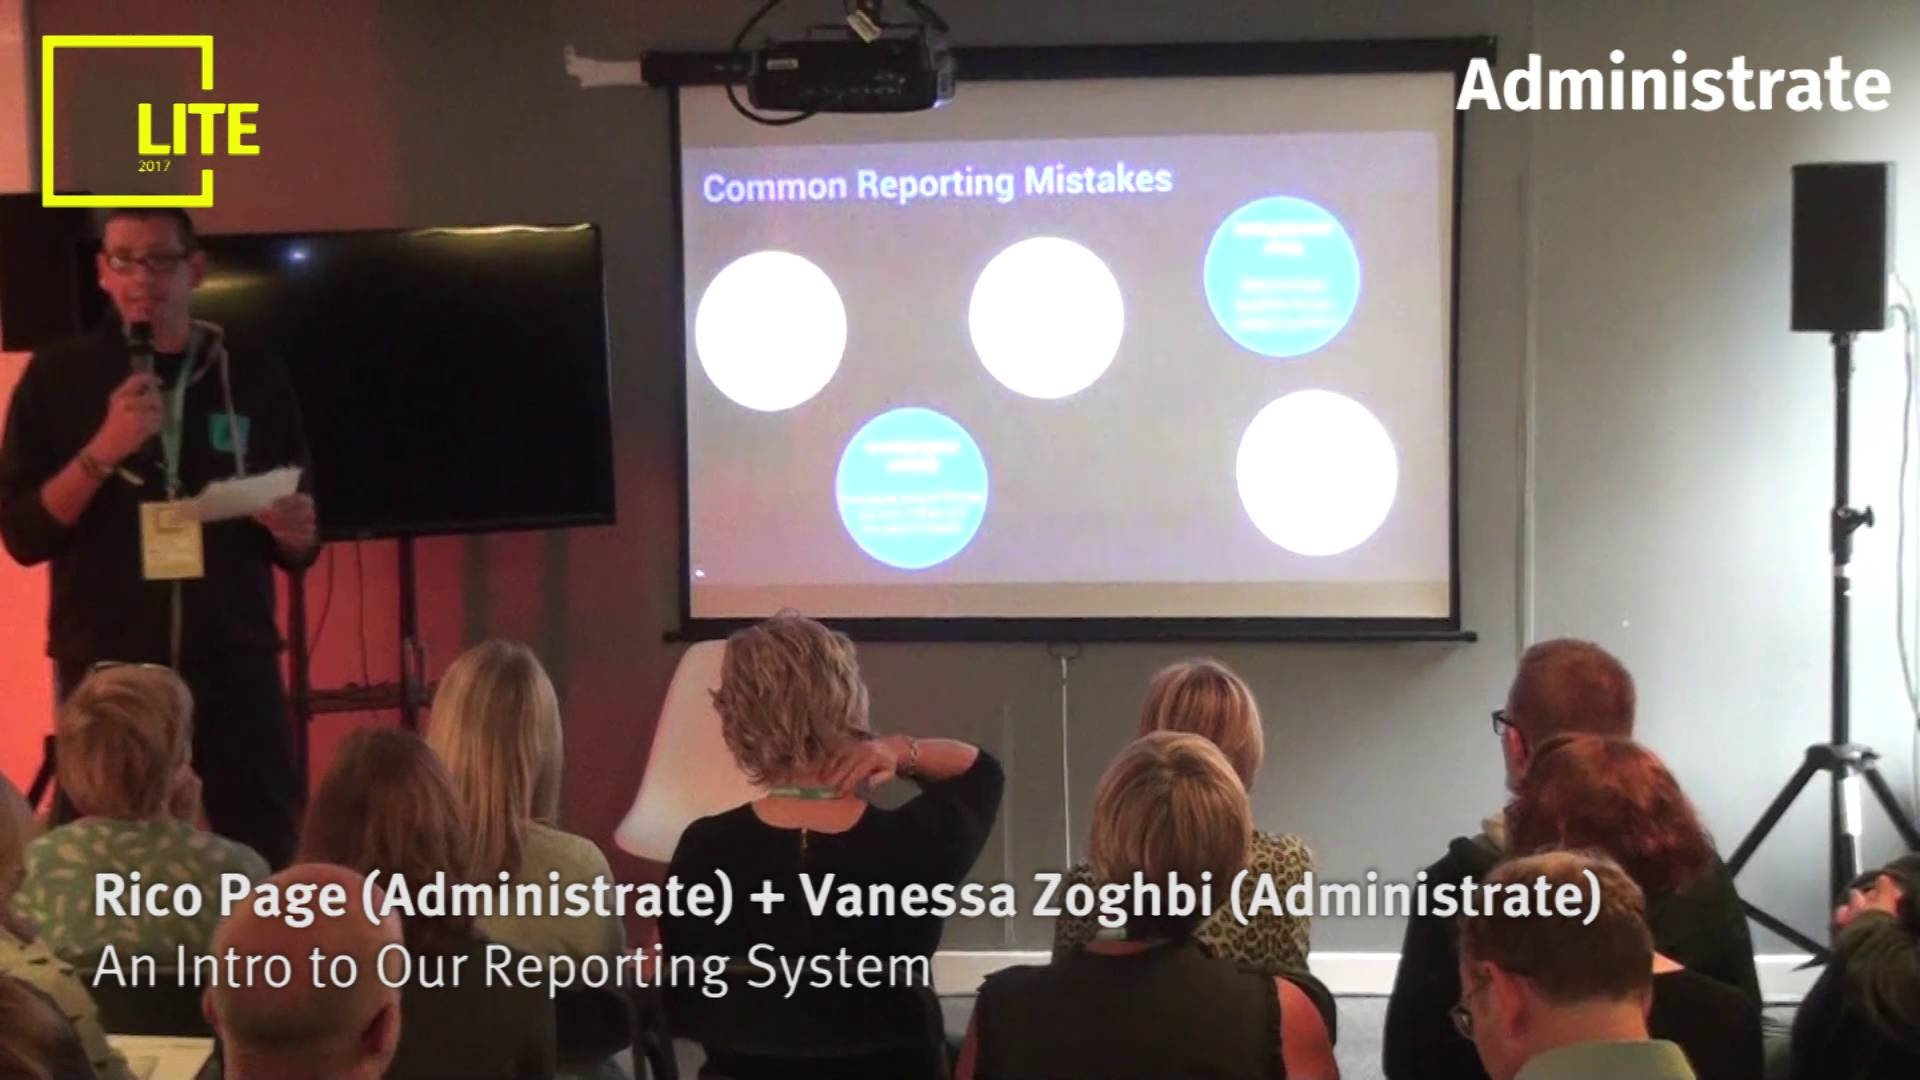 An Intro to Our Reporting System [Rico Page & Vanessa Zoghbi]